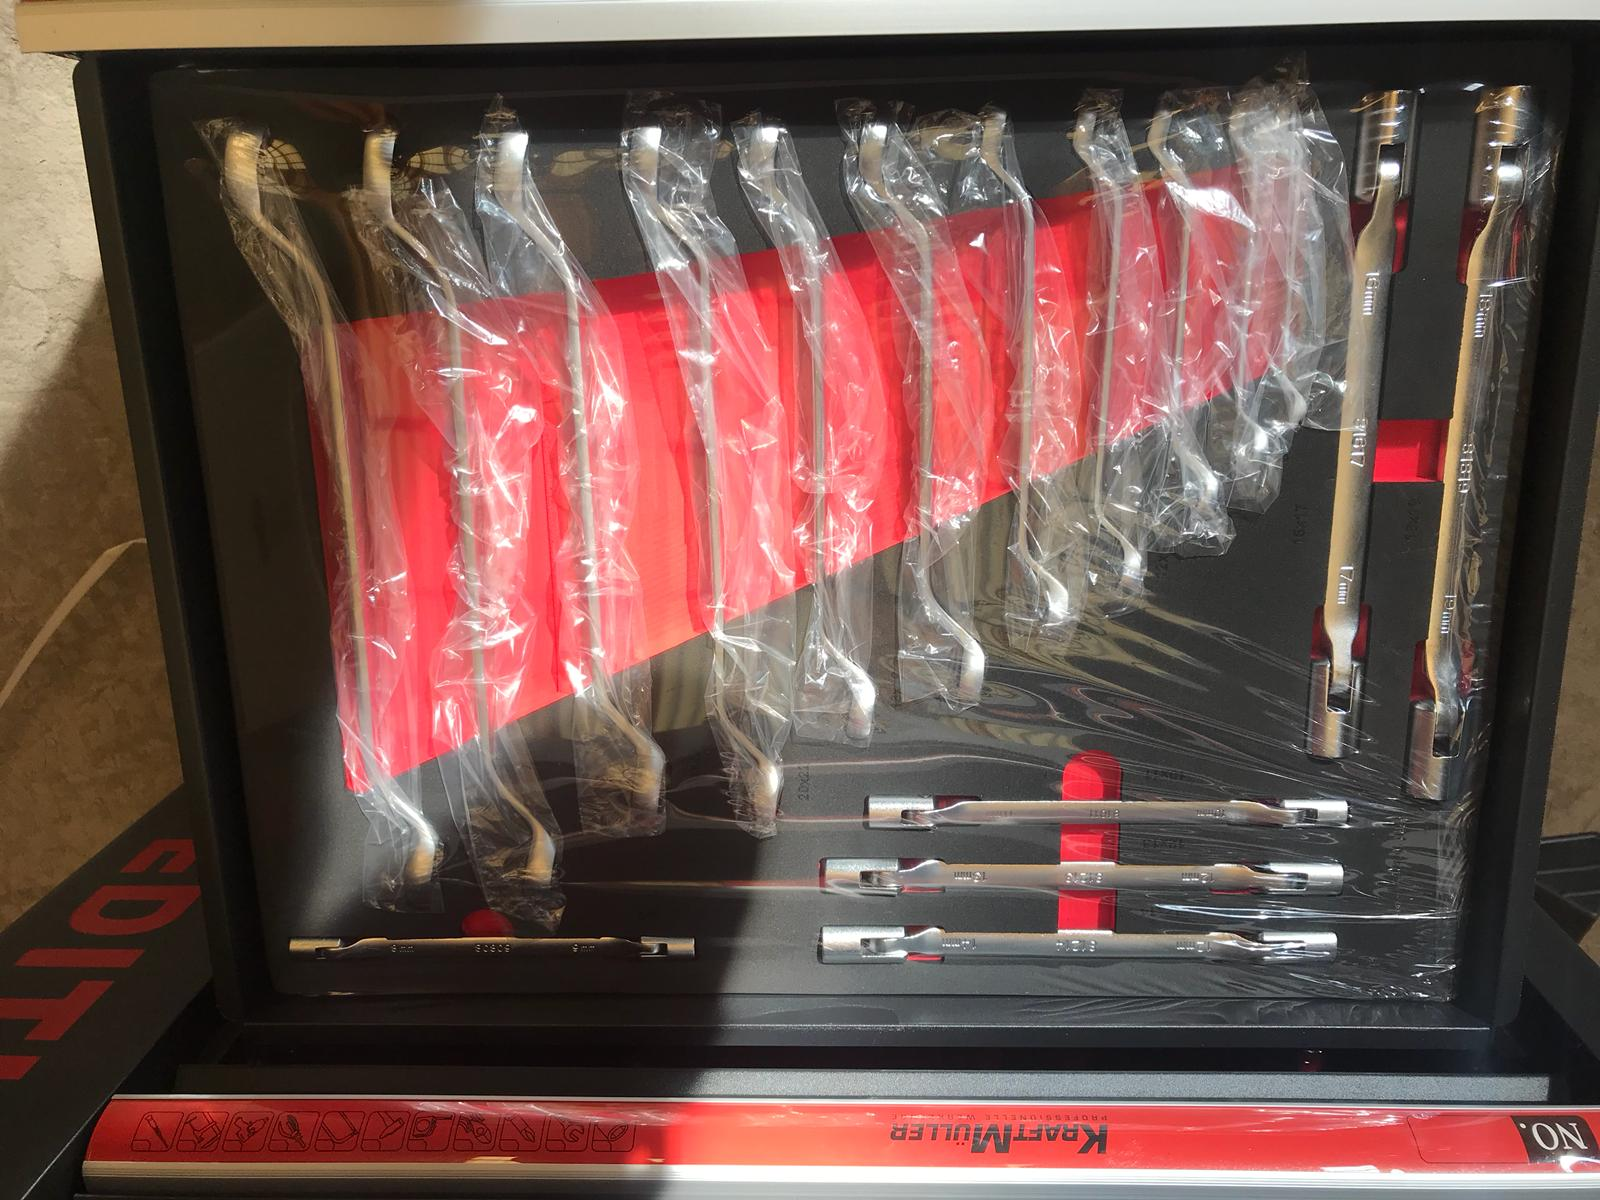 Lot 50009 - V Brand New Seven Drawer Locking Garage Tool Cabinet With Lockable Casters - Seven EVA Drawers of